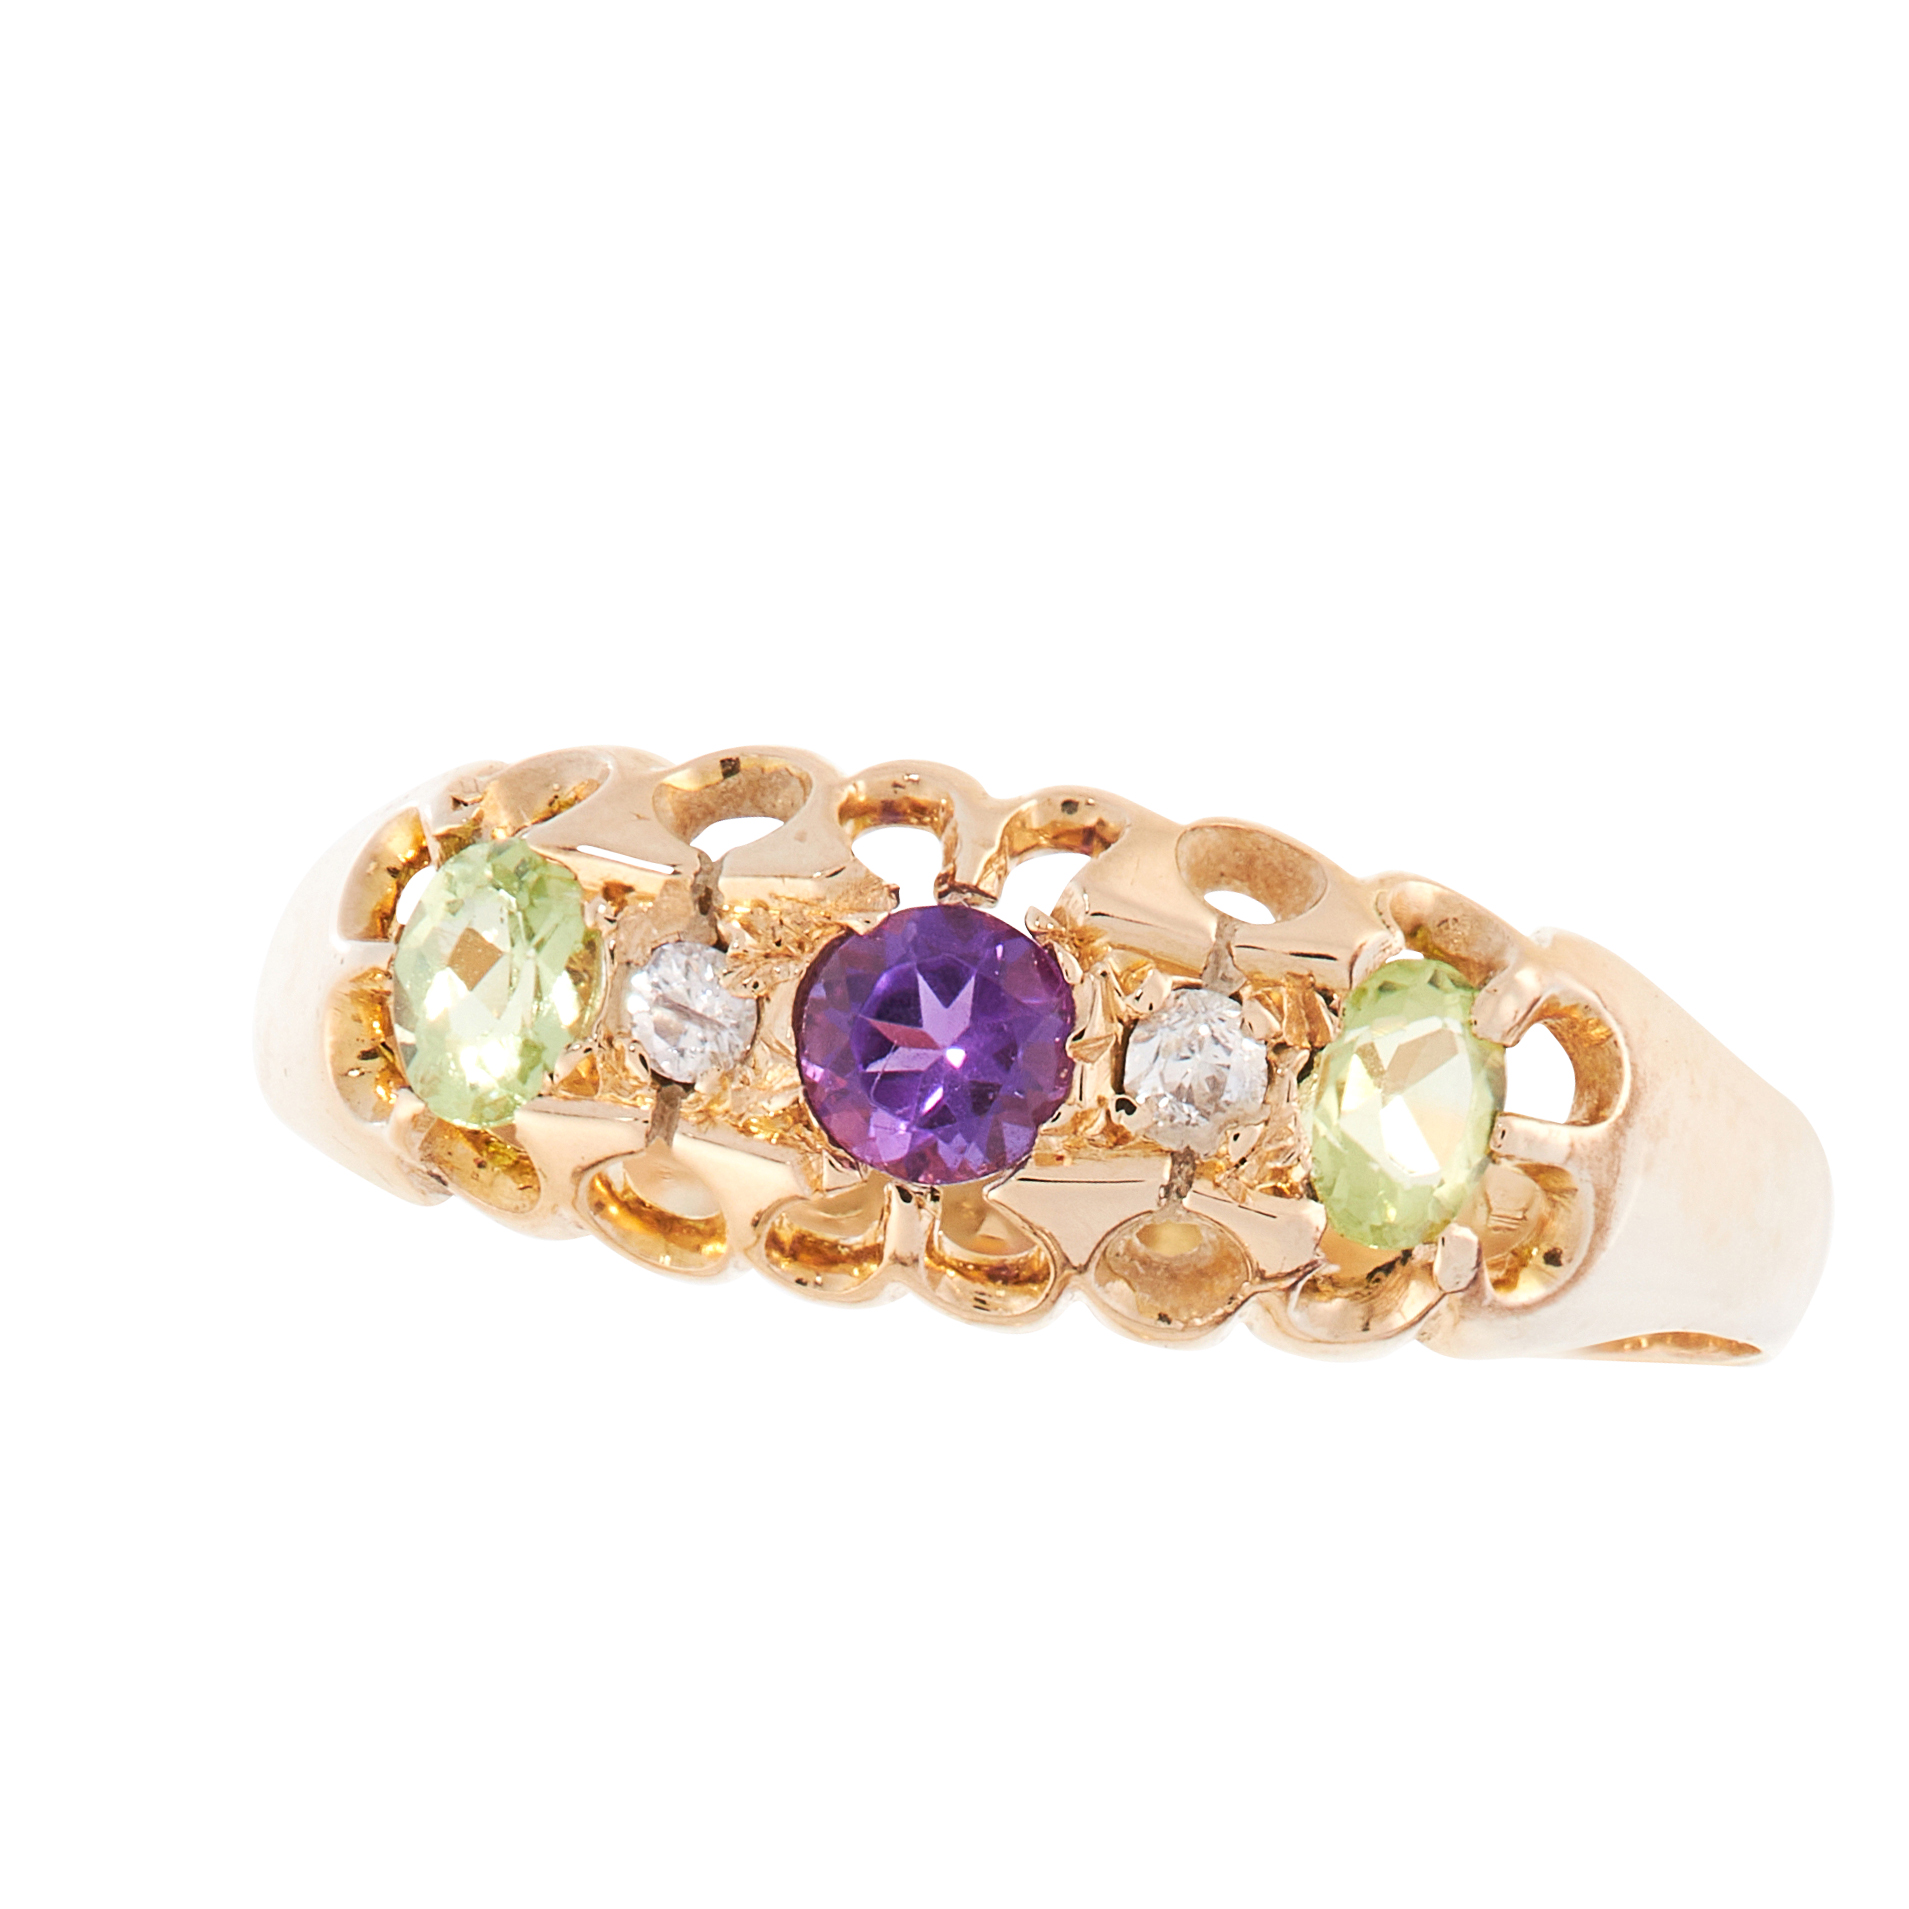 AN ANTIQUE PERIDOT, DIAMOND AND AMETHYST SUFFRAGETTE DRESS RING, 1907 in 18ct yellow gold, set